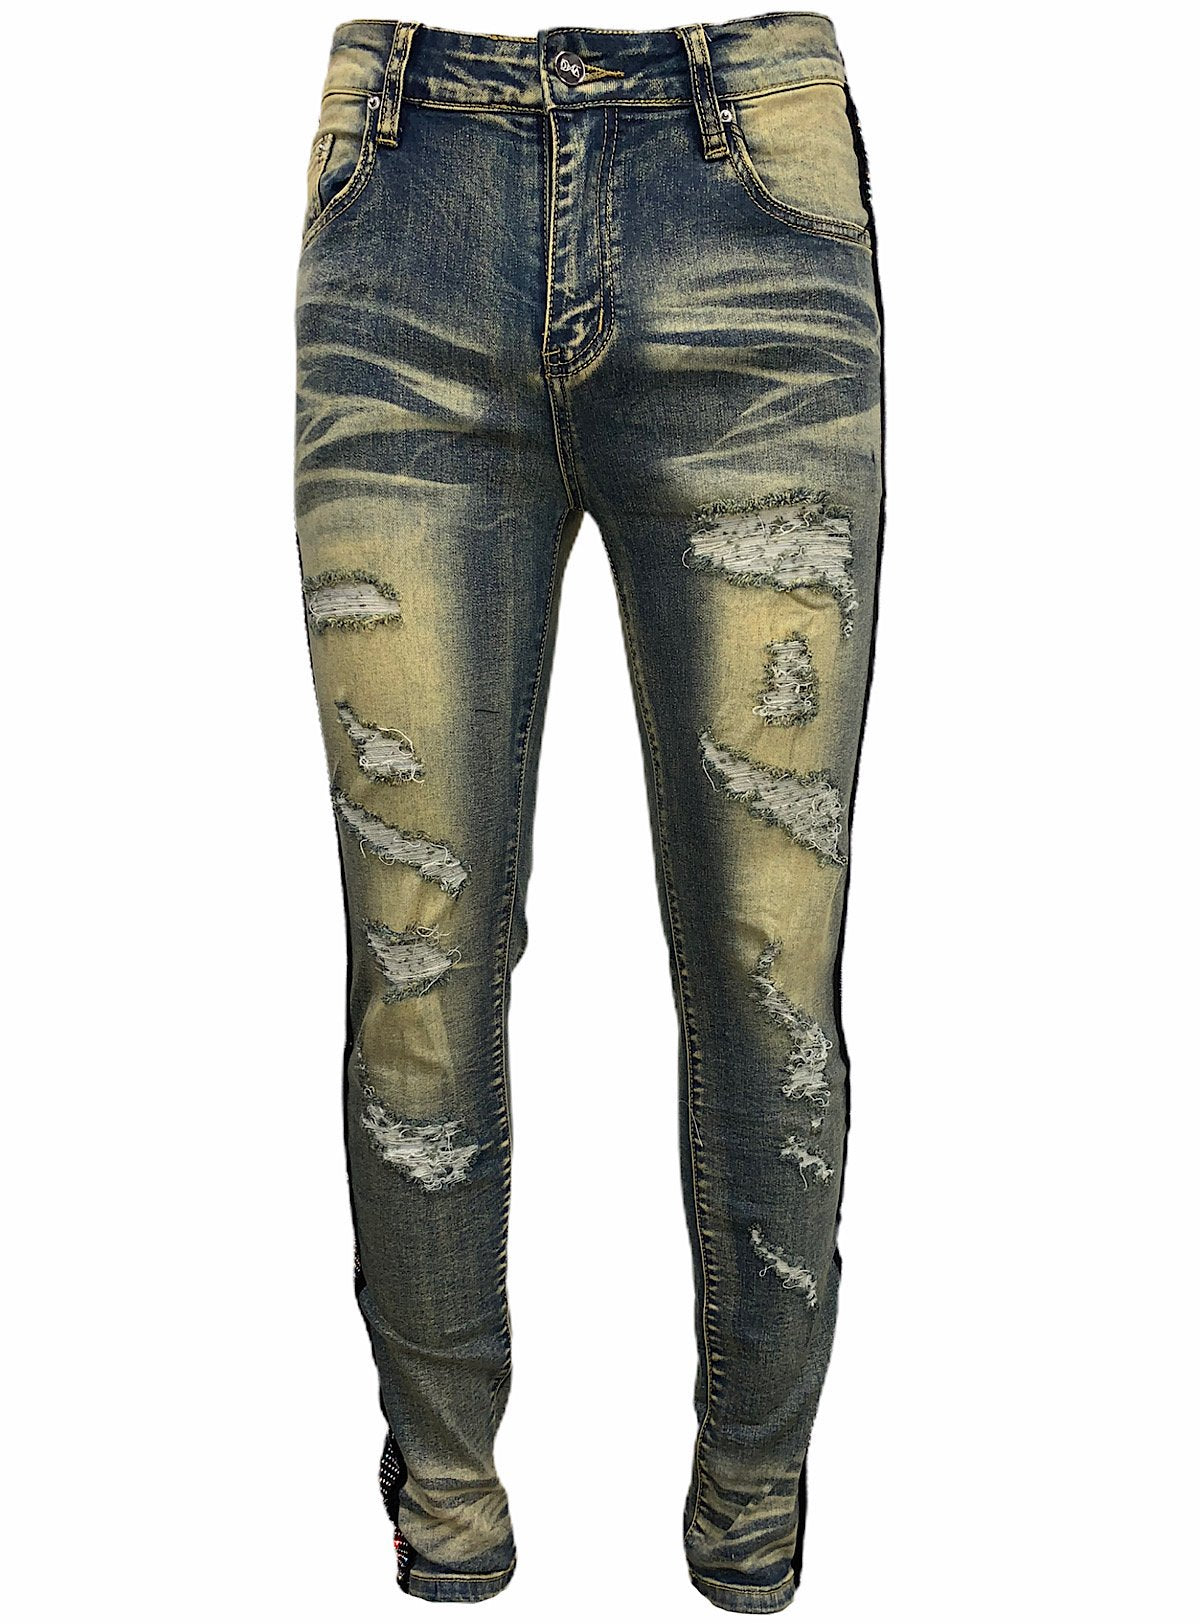 DNA Jeans - Green And Multi Stones